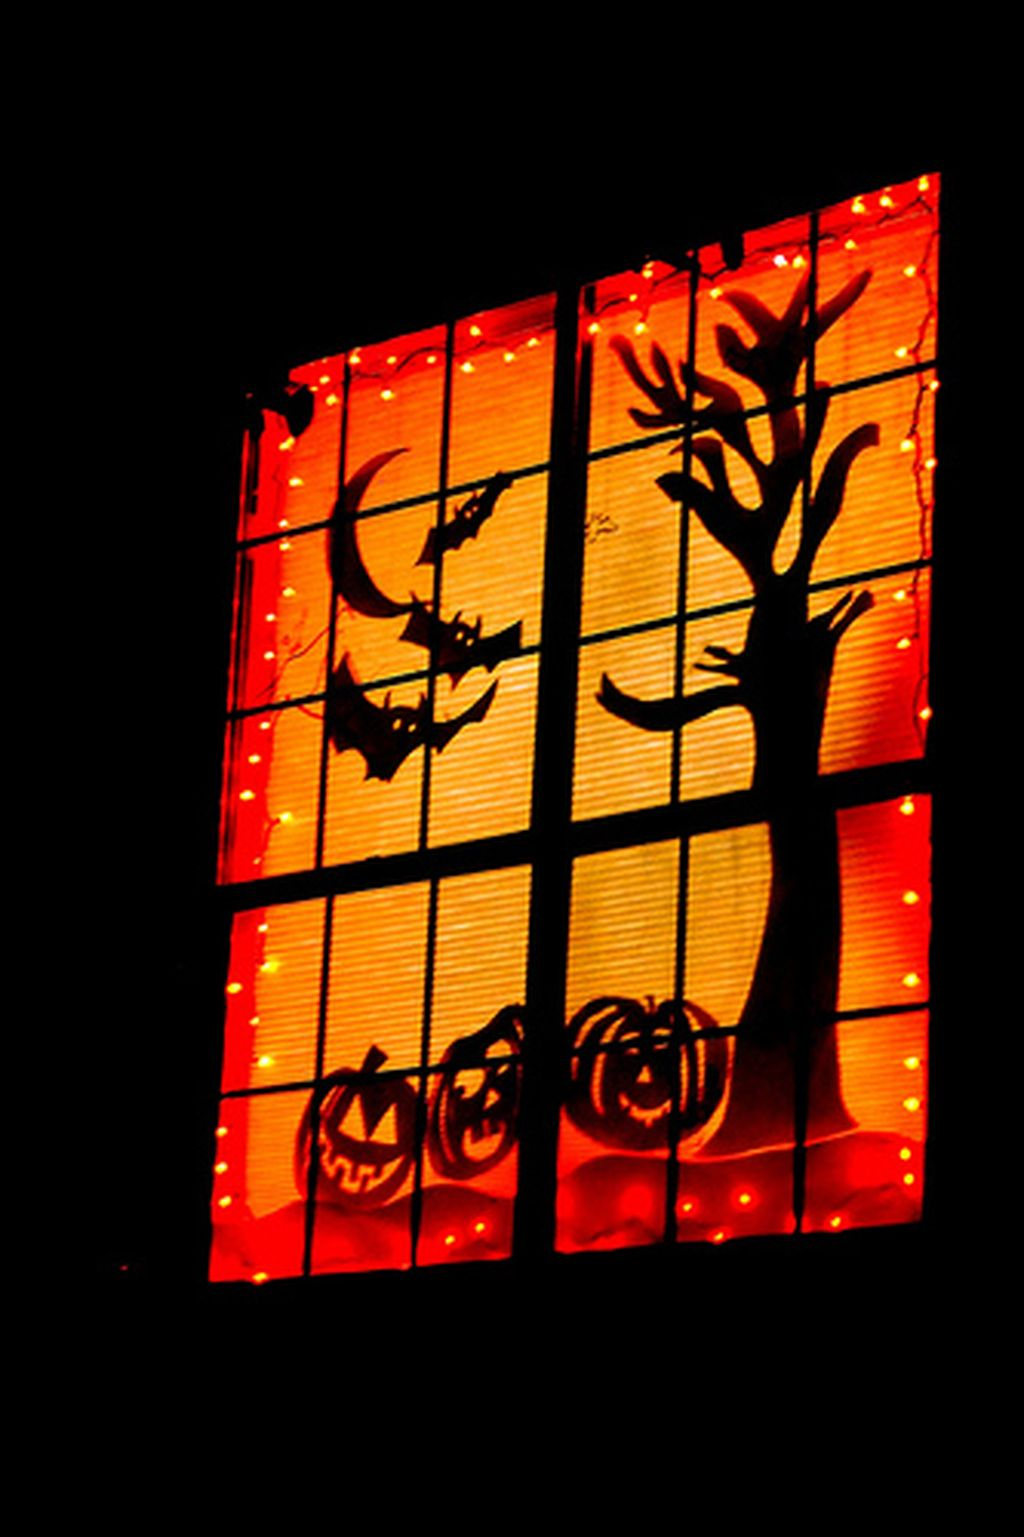 Scary But Creative DIY Halloween Window Decorations Ideas You Should Try 52